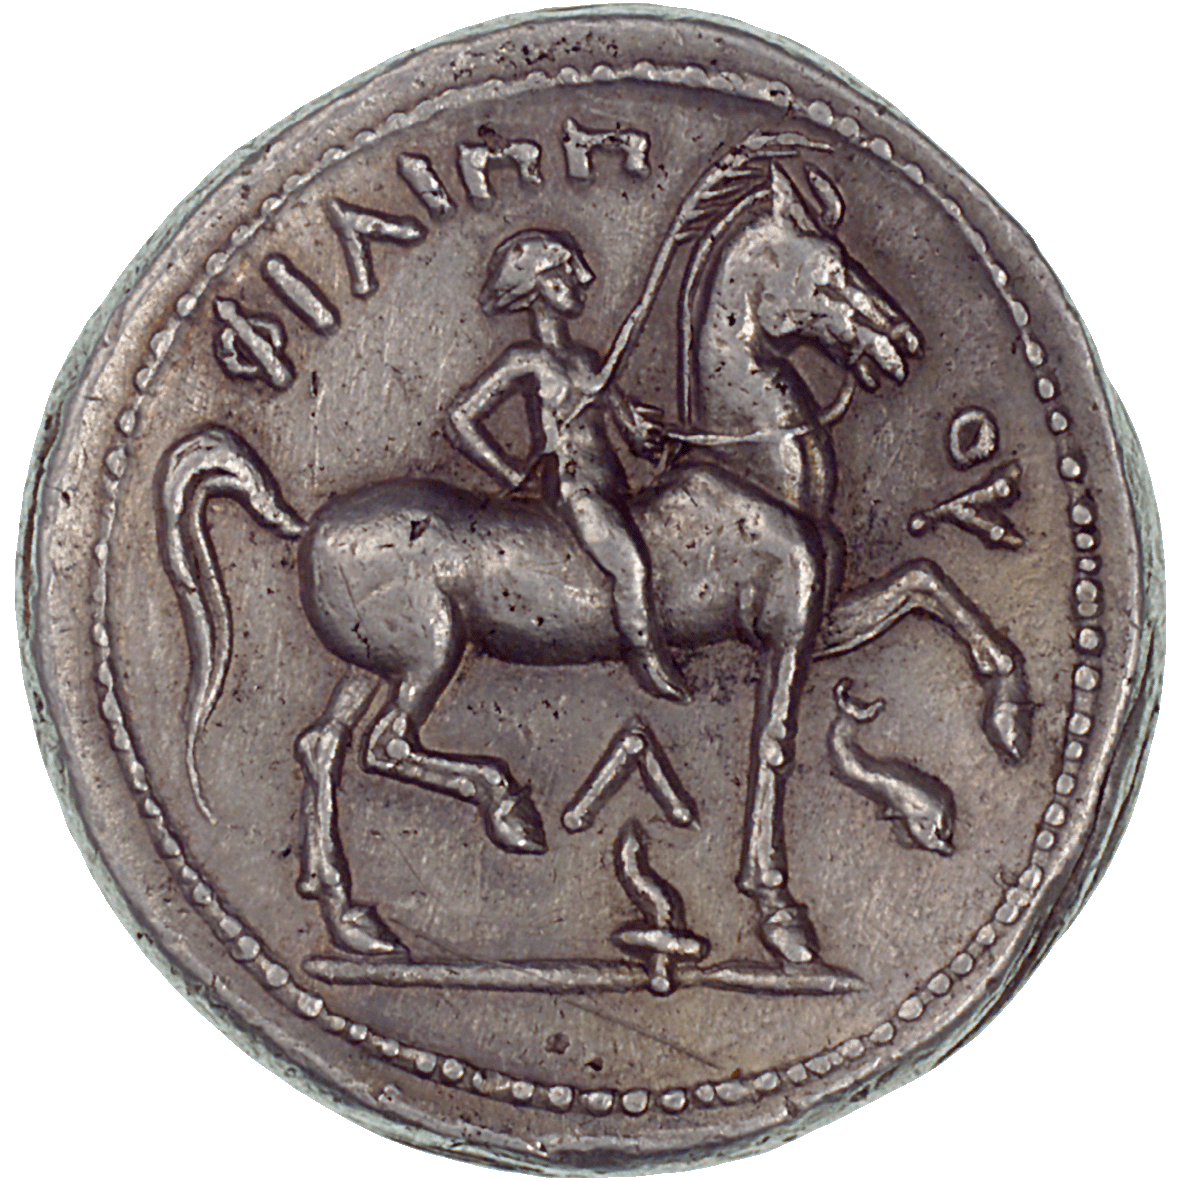 Kingdom of Macedonia, Tetradrachm in the Name of Philip II (reverse)